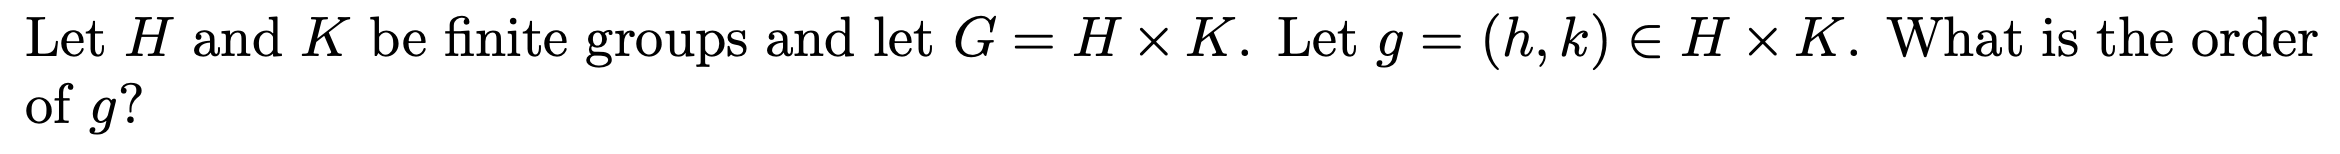 (h, k) E H x K. What is the order Let H and K be finite groups and let G = H x K. Let g of g?